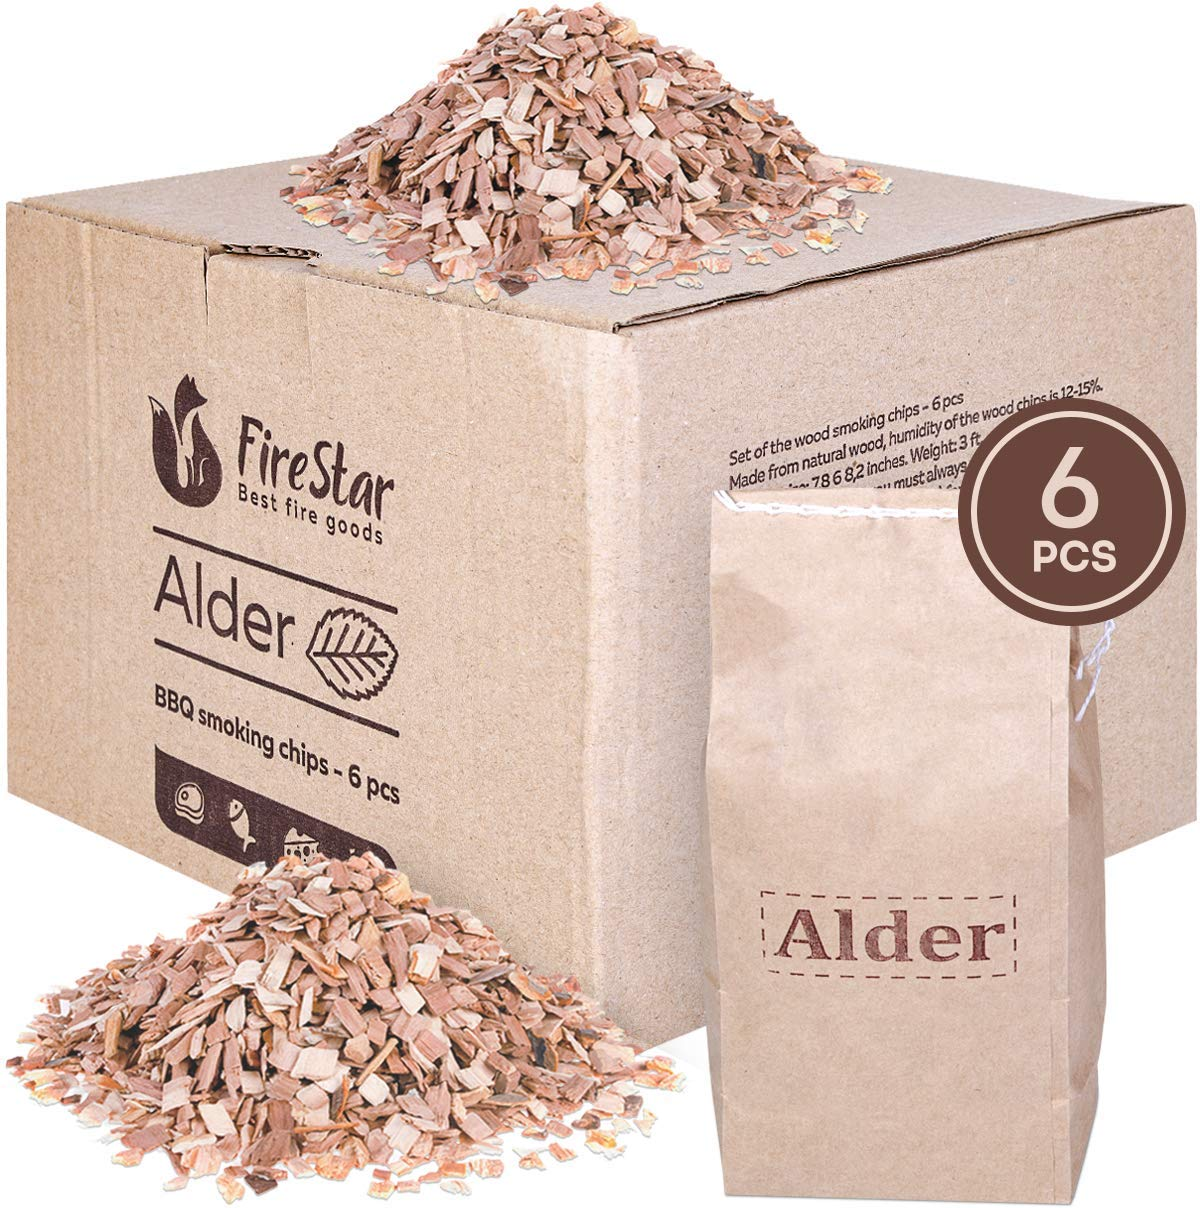 Alder wood chips for smokers - 6 packs wood chips for smoking and grilling - Wood chips for electric smokers